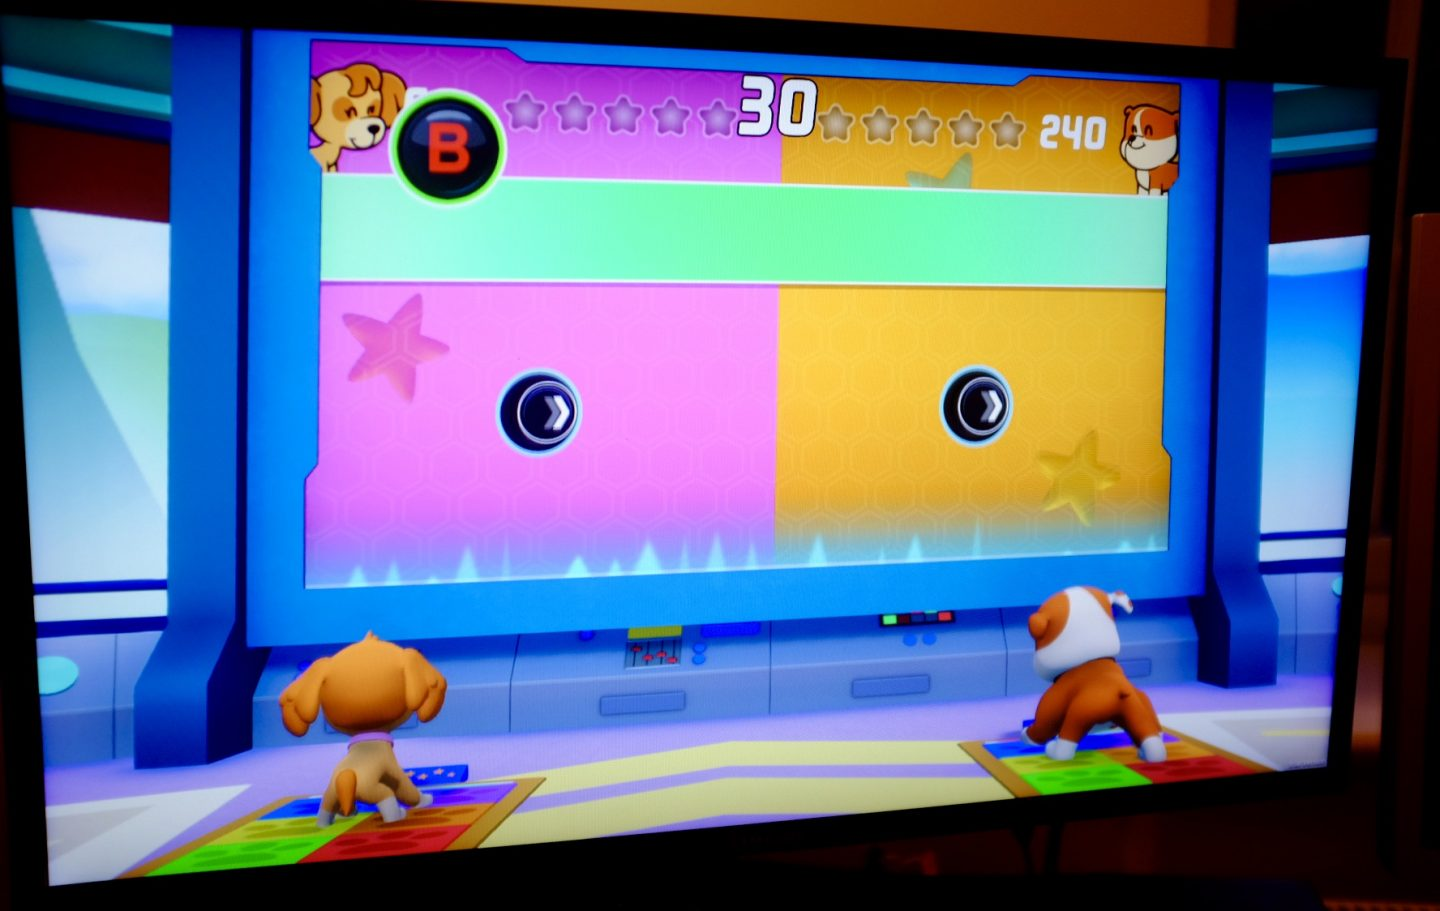 Pup Pup Boogie mini game